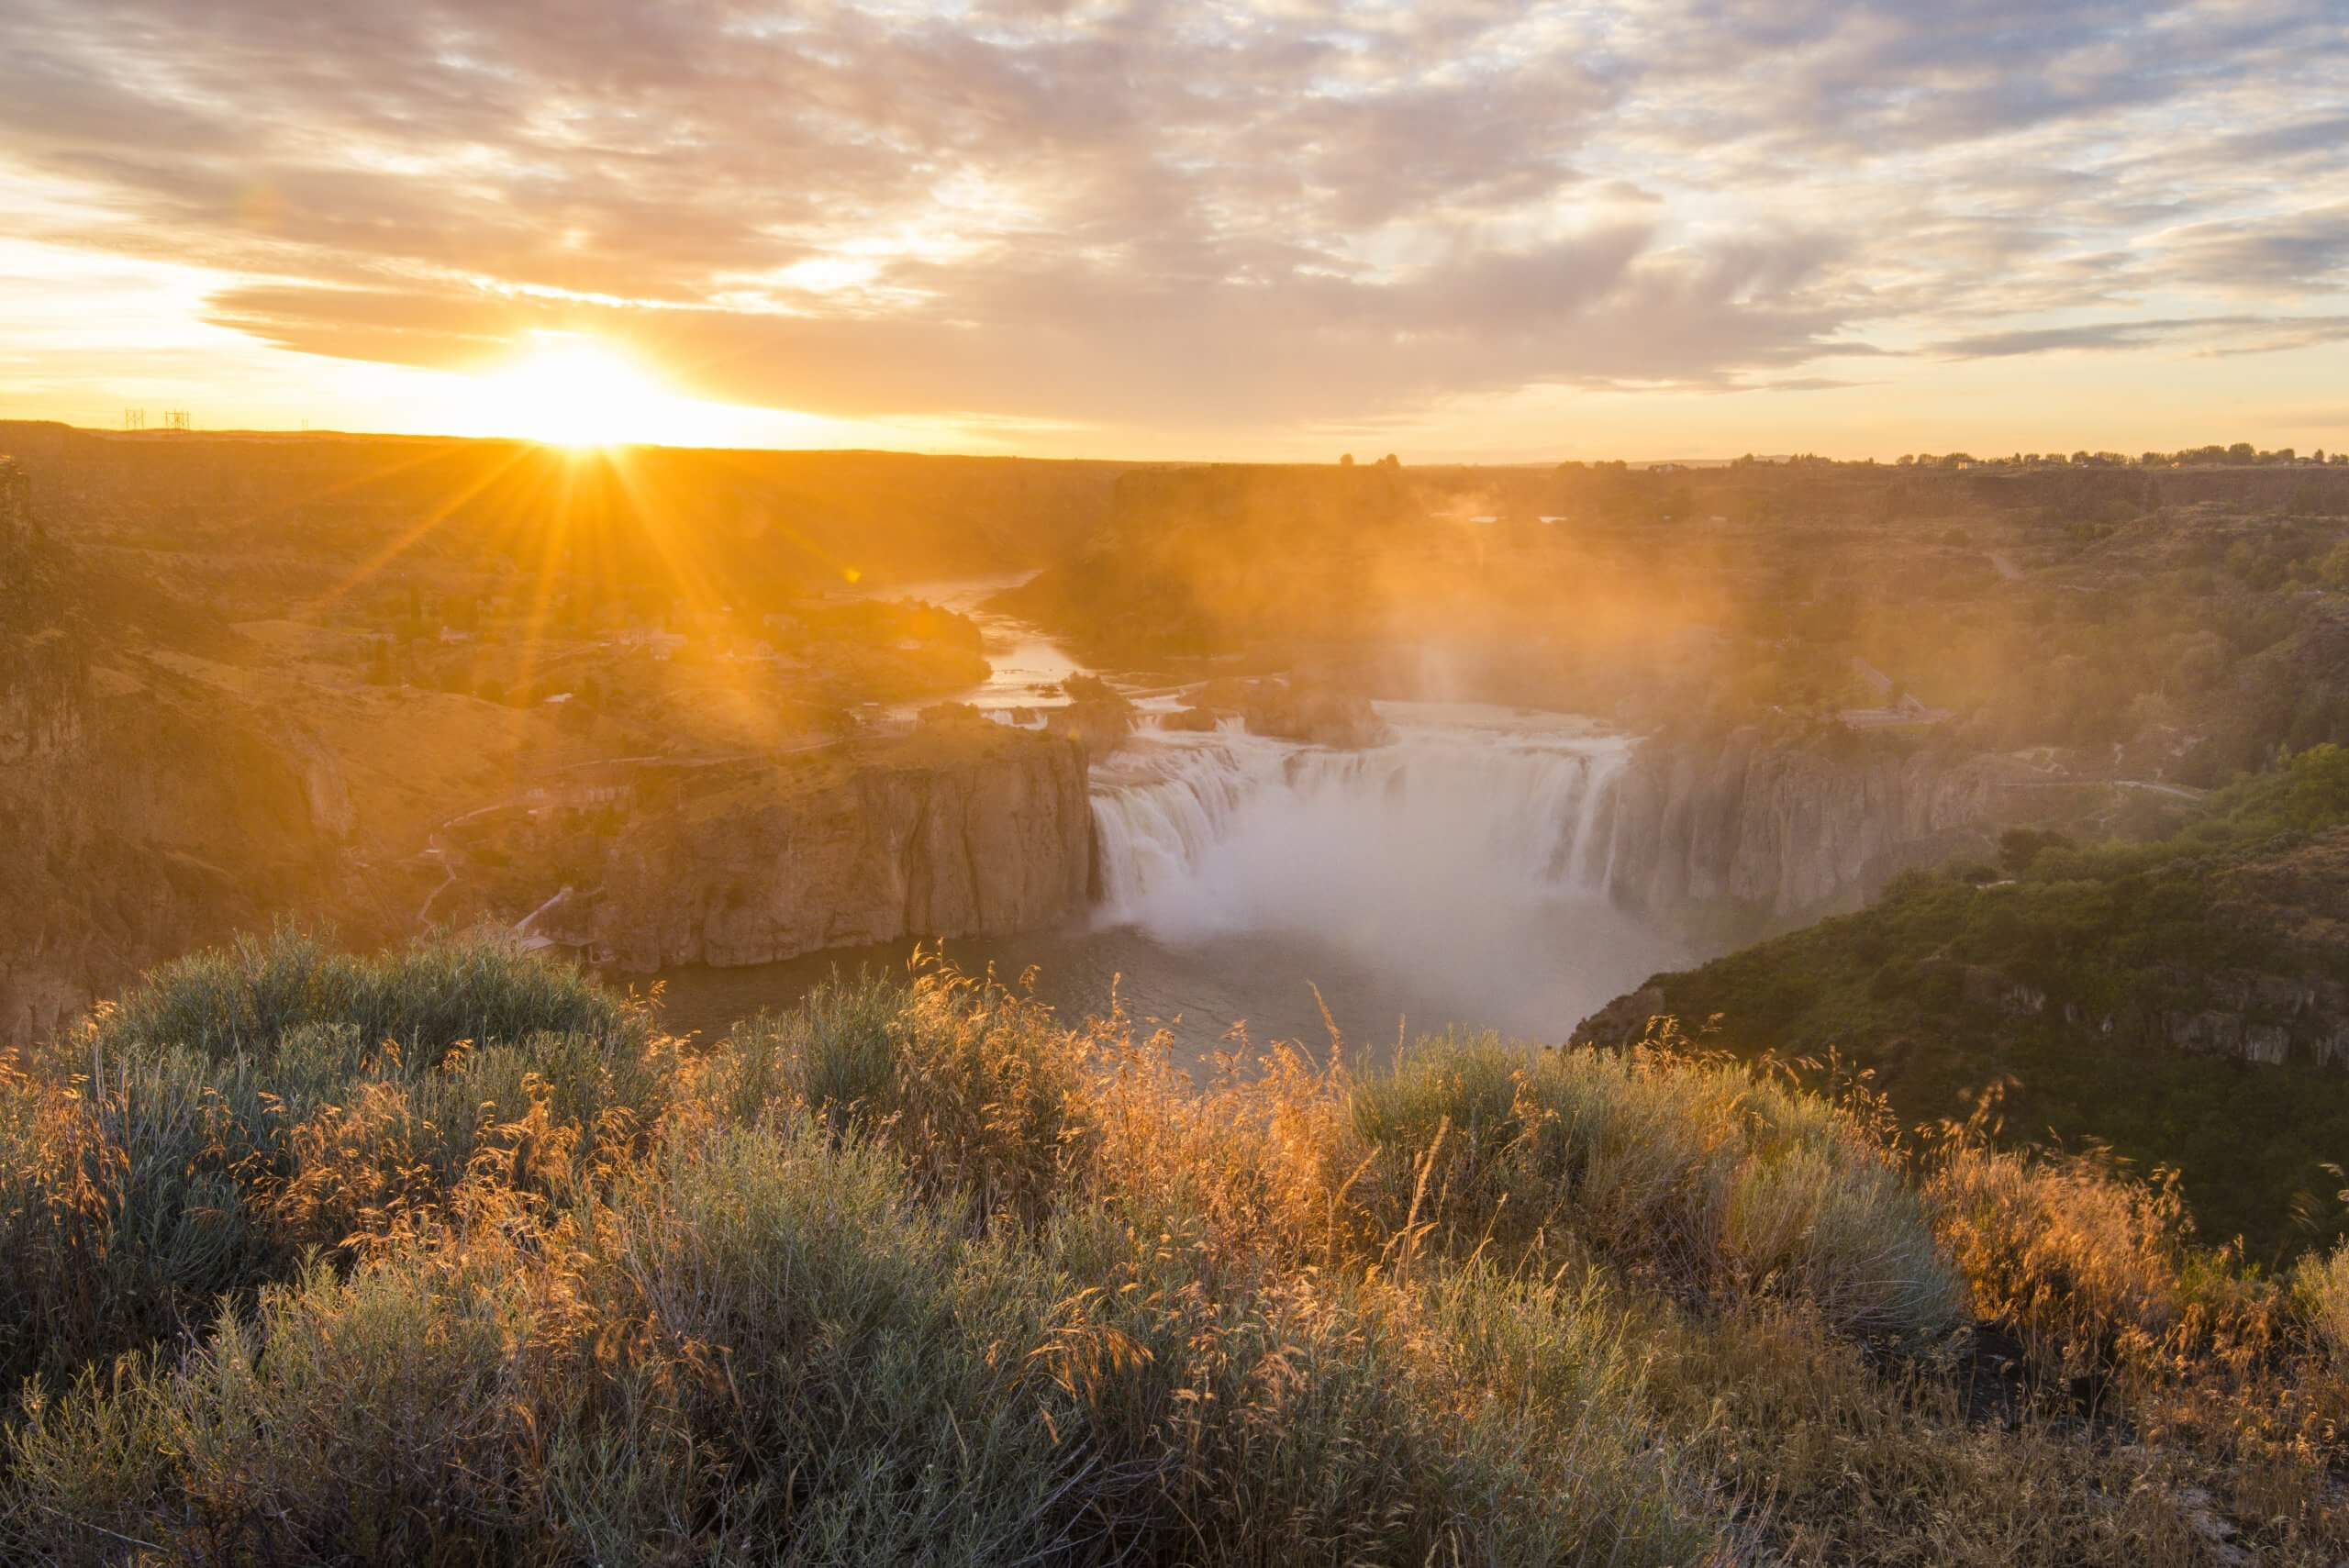 A view of Shoshone Falls from the viewing deck in the summer as the sun sets.